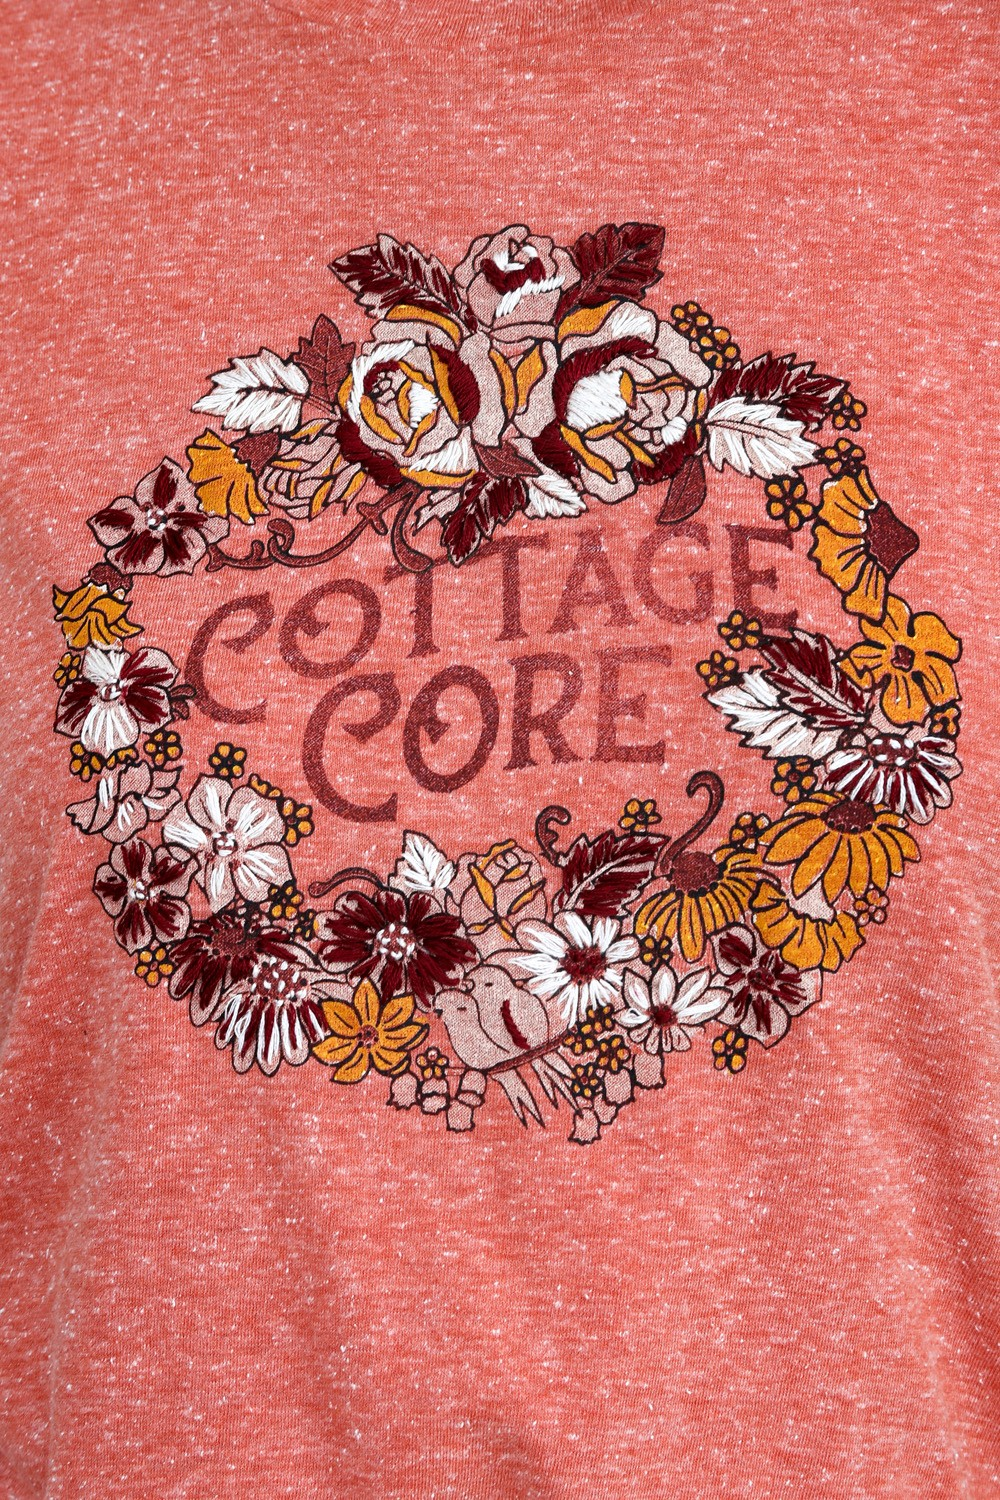 CAMISETA COTTAGE CORE I21